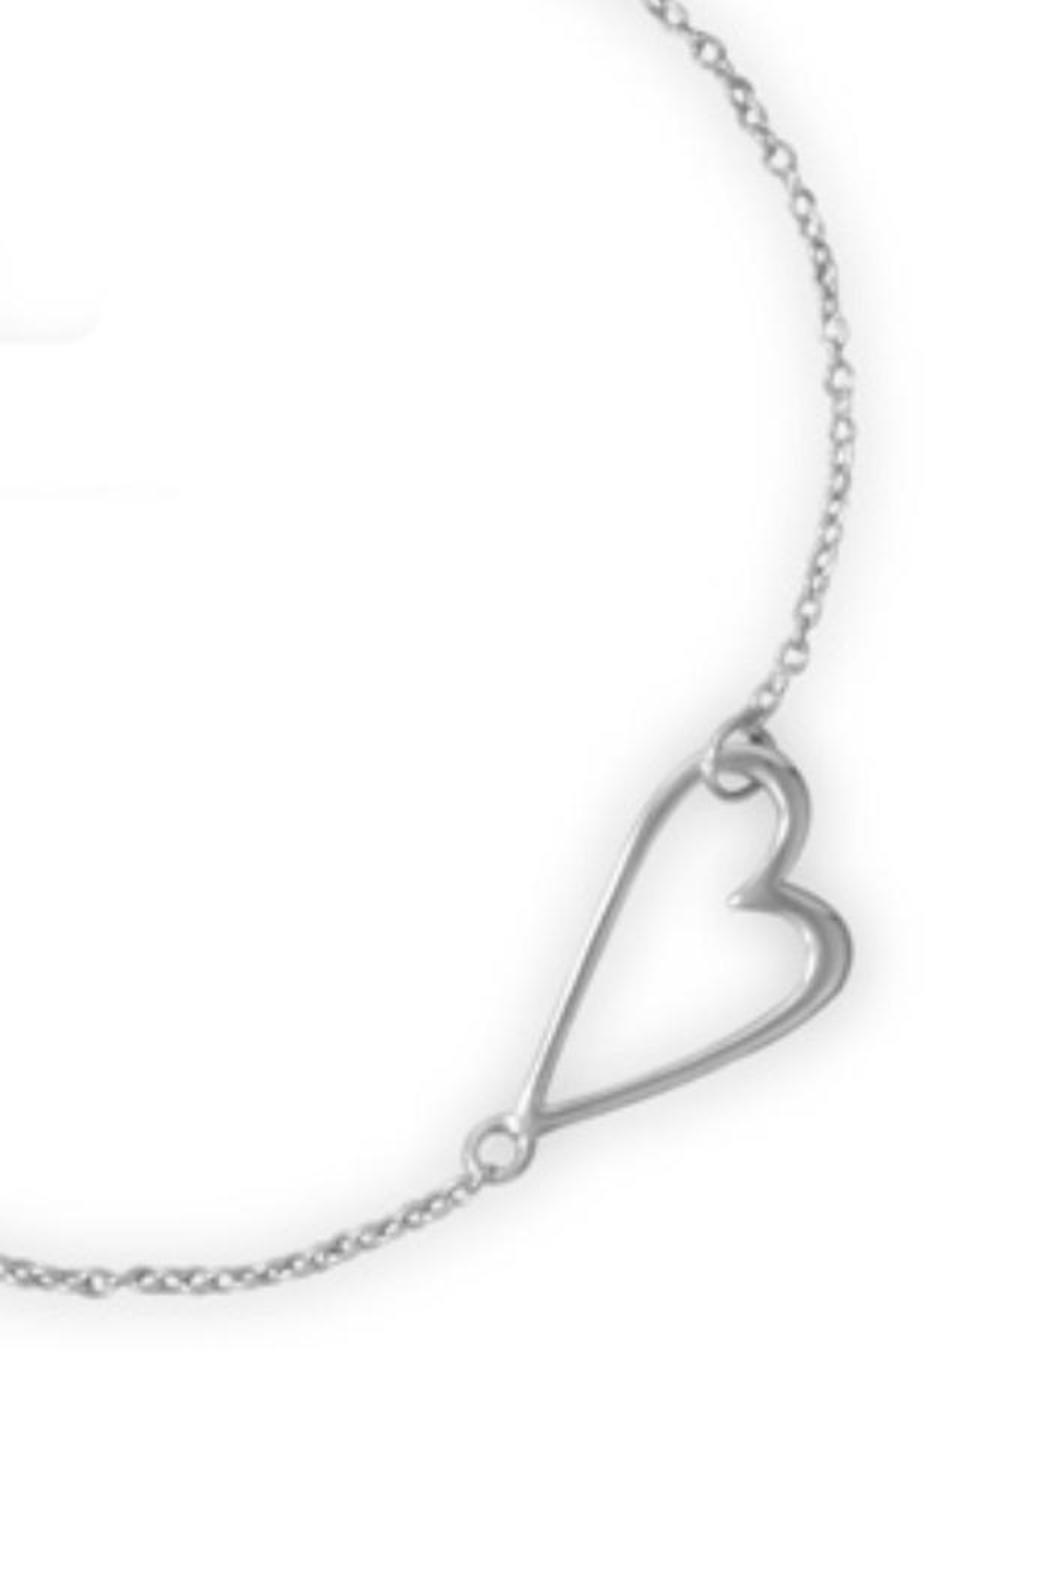 Mma Silver Sideways Heart Necklace From Utah By The